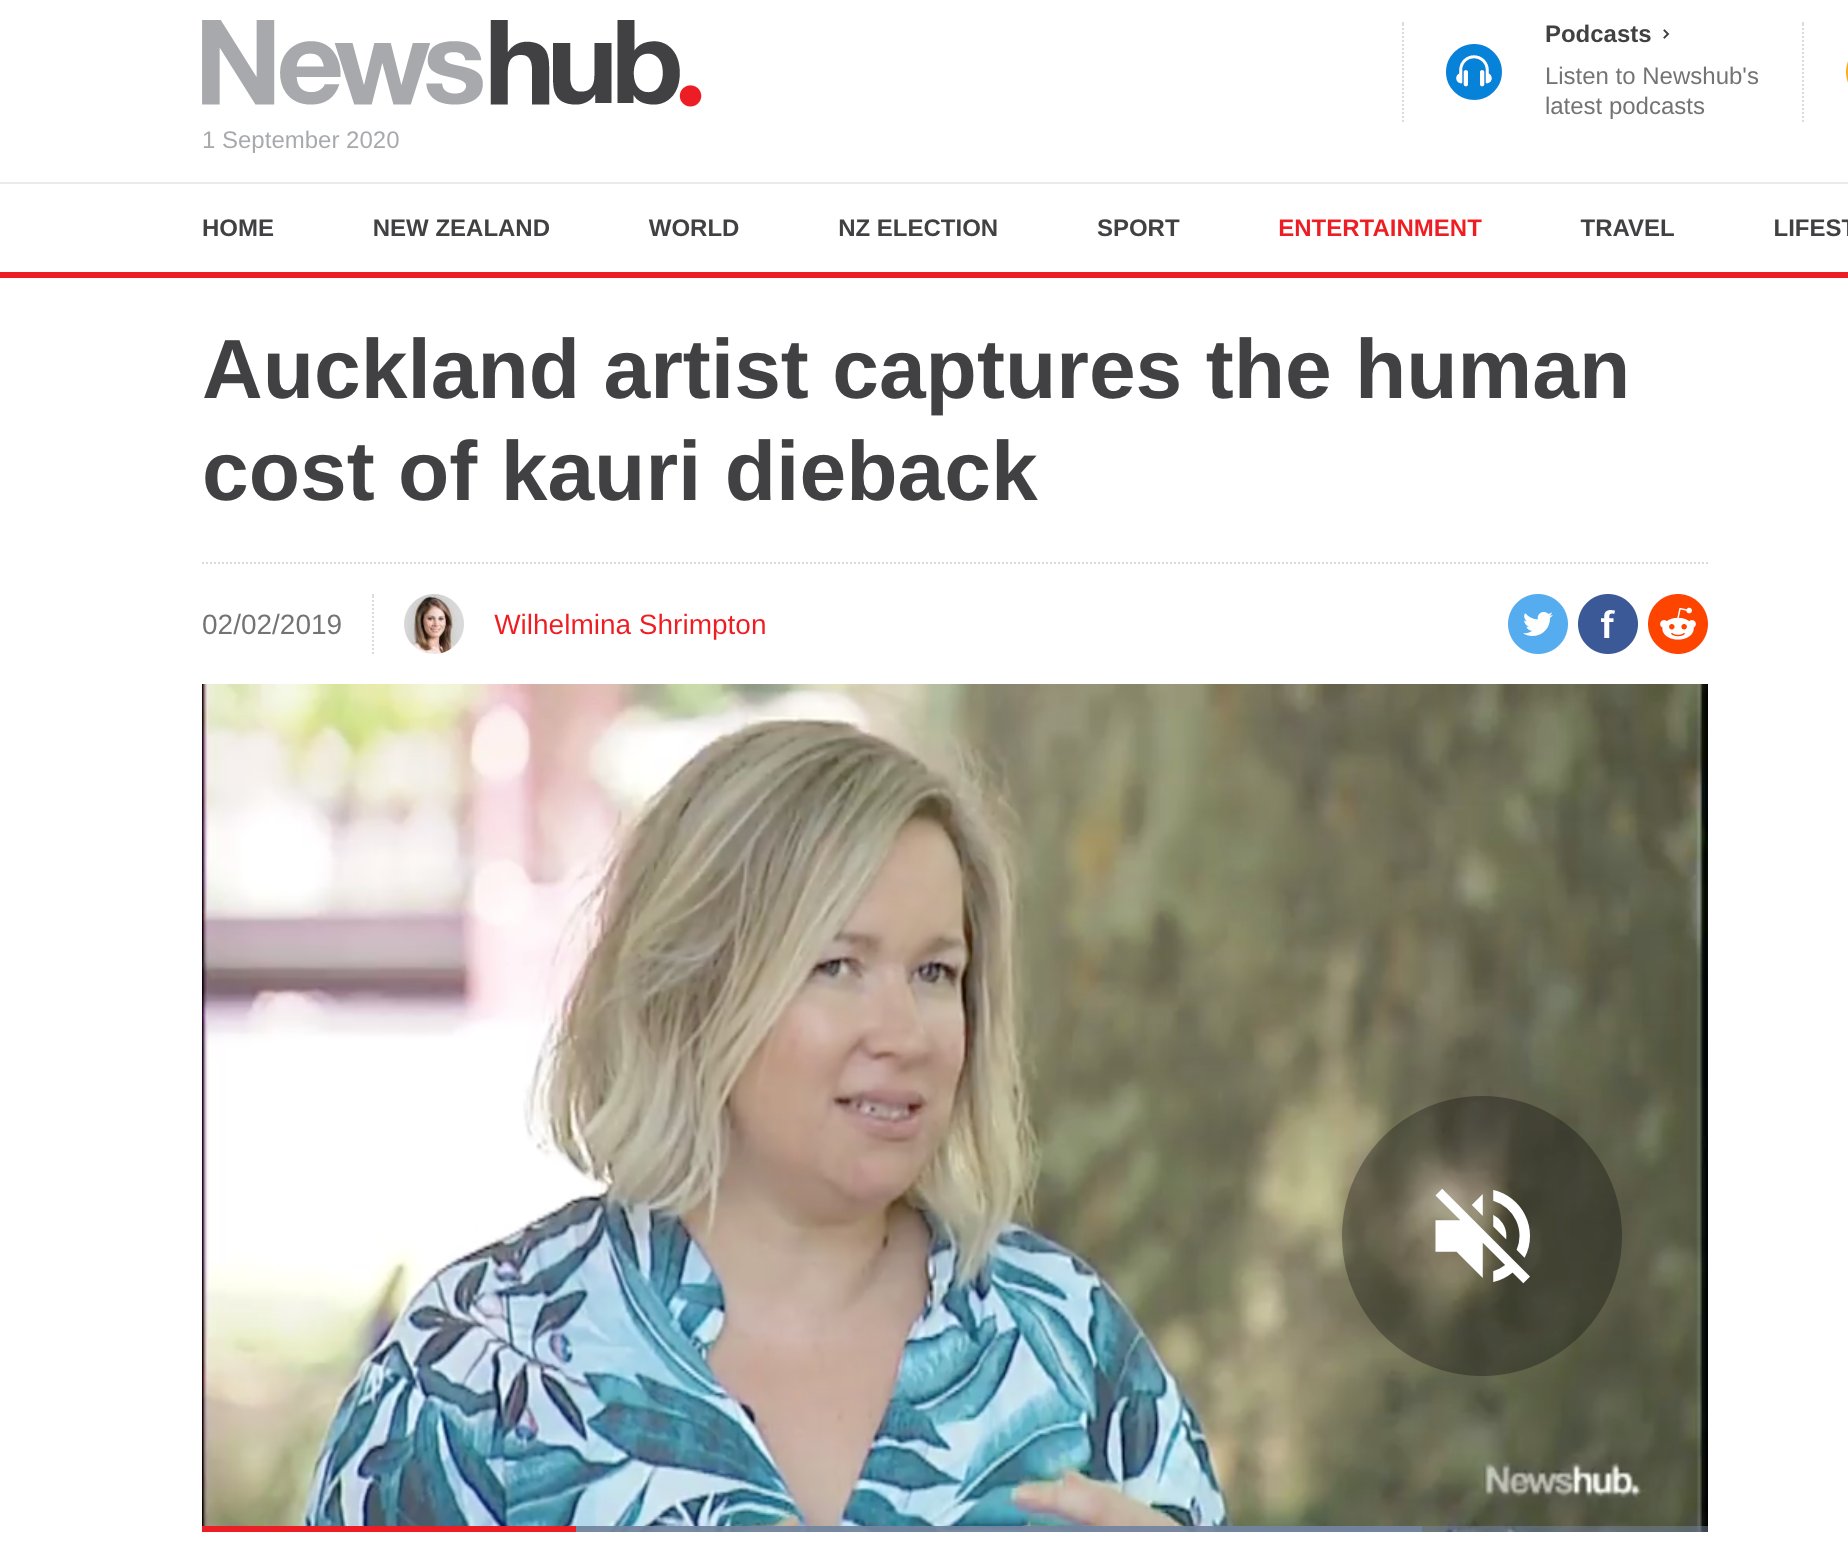 NEWSHUB INTERVIEW